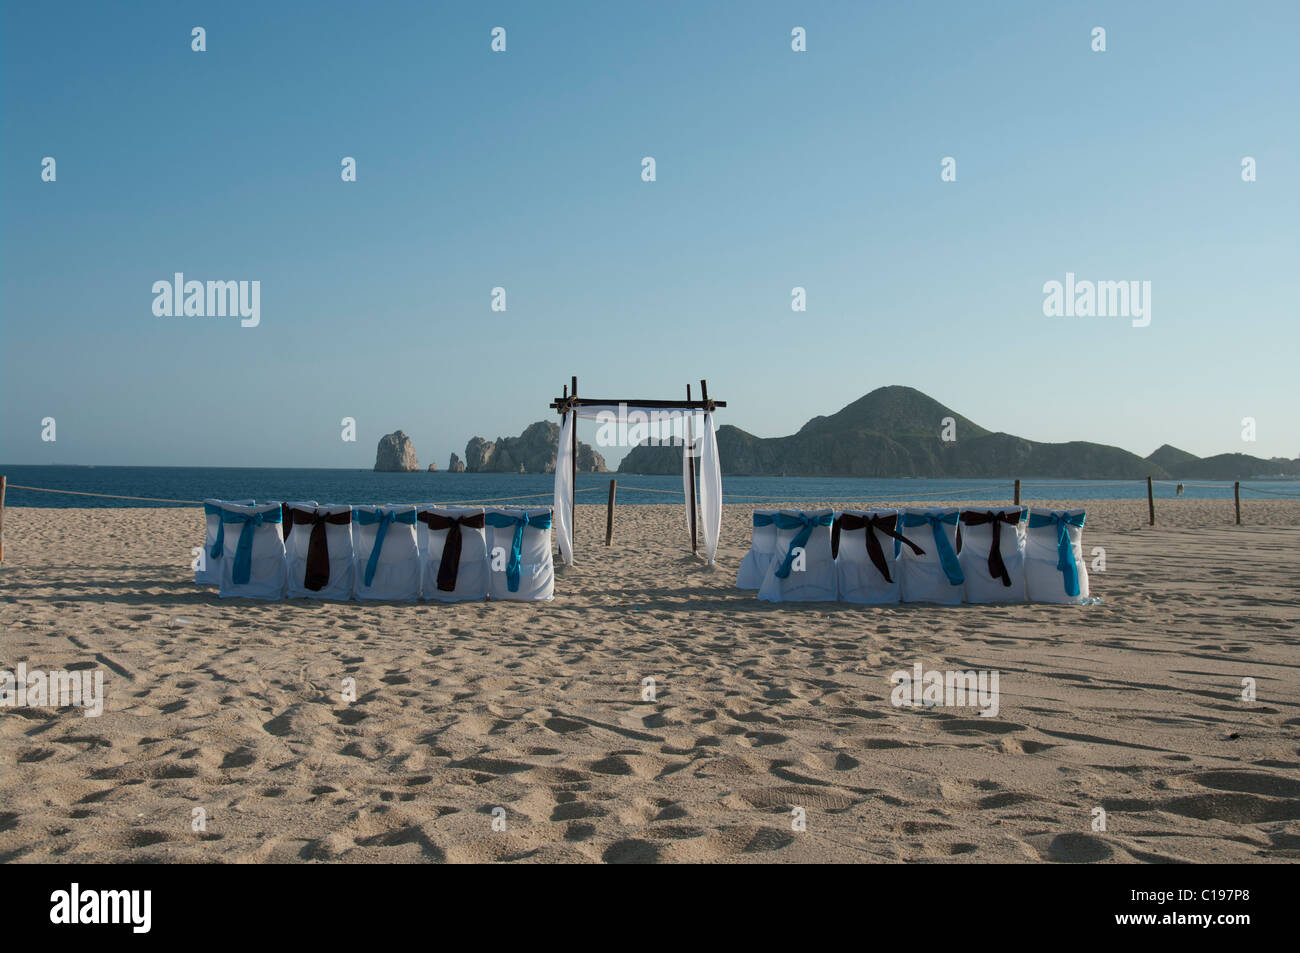 A Deserted Beach Set Up For A Wedding Ceremony The Chair Covers Are Stock Photo Alamy